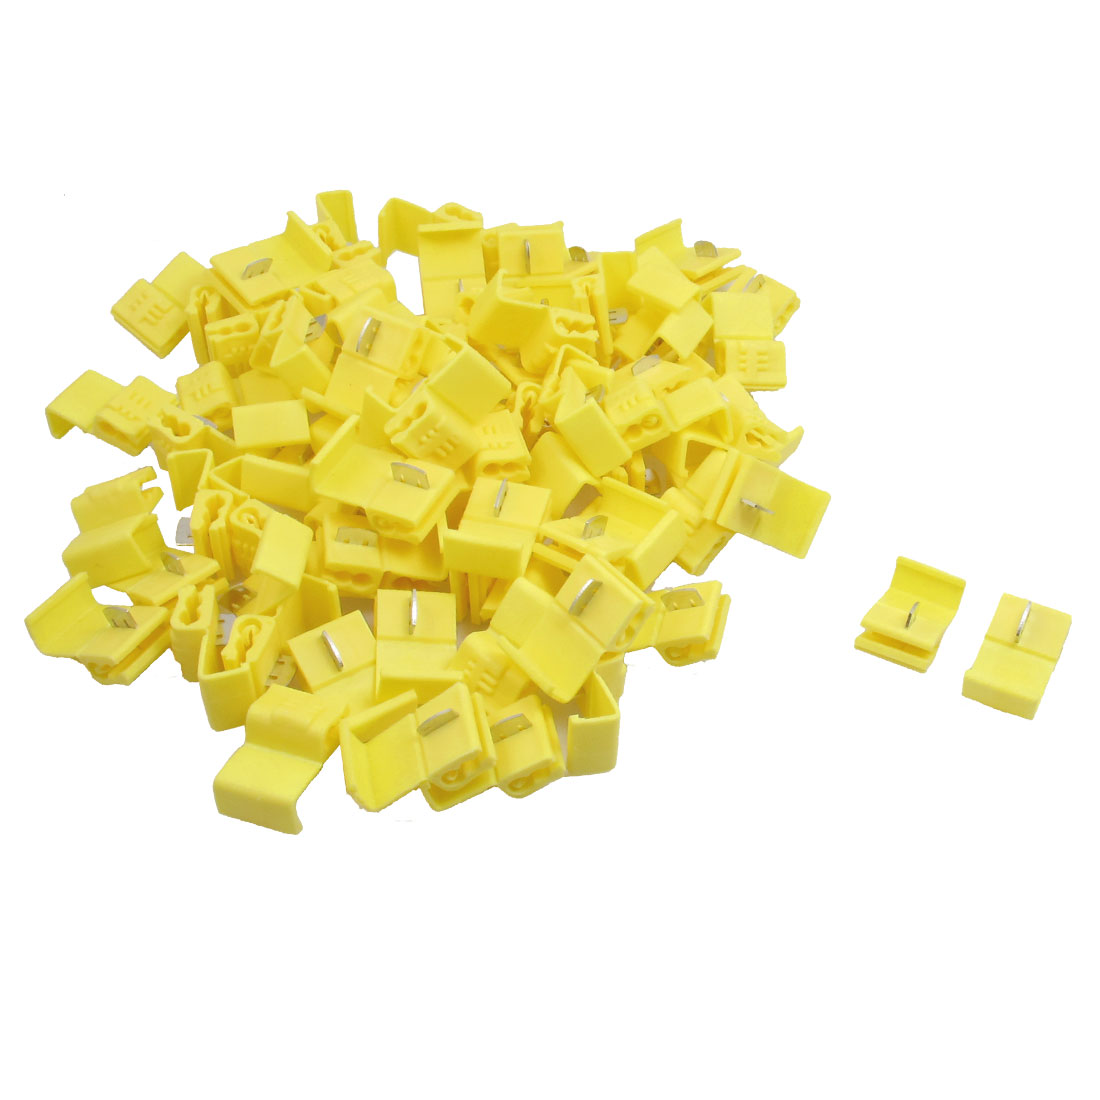 100 Pcs Yellow 12-10 AWG Cable Wire Clamp Clip for Car Vehicle